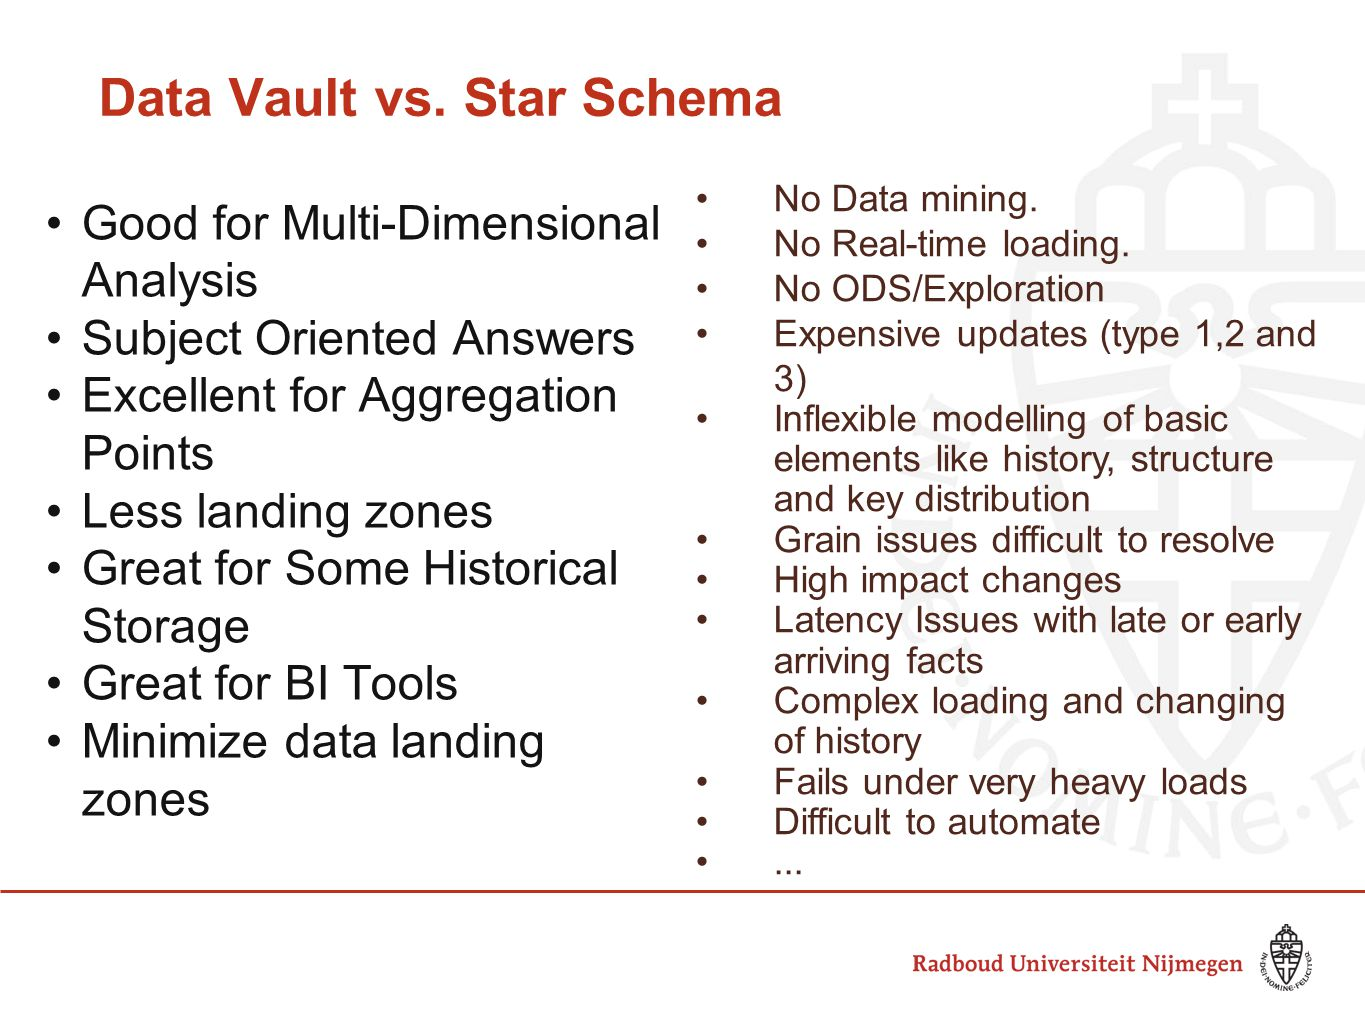 Data Vault vs. Star Schema